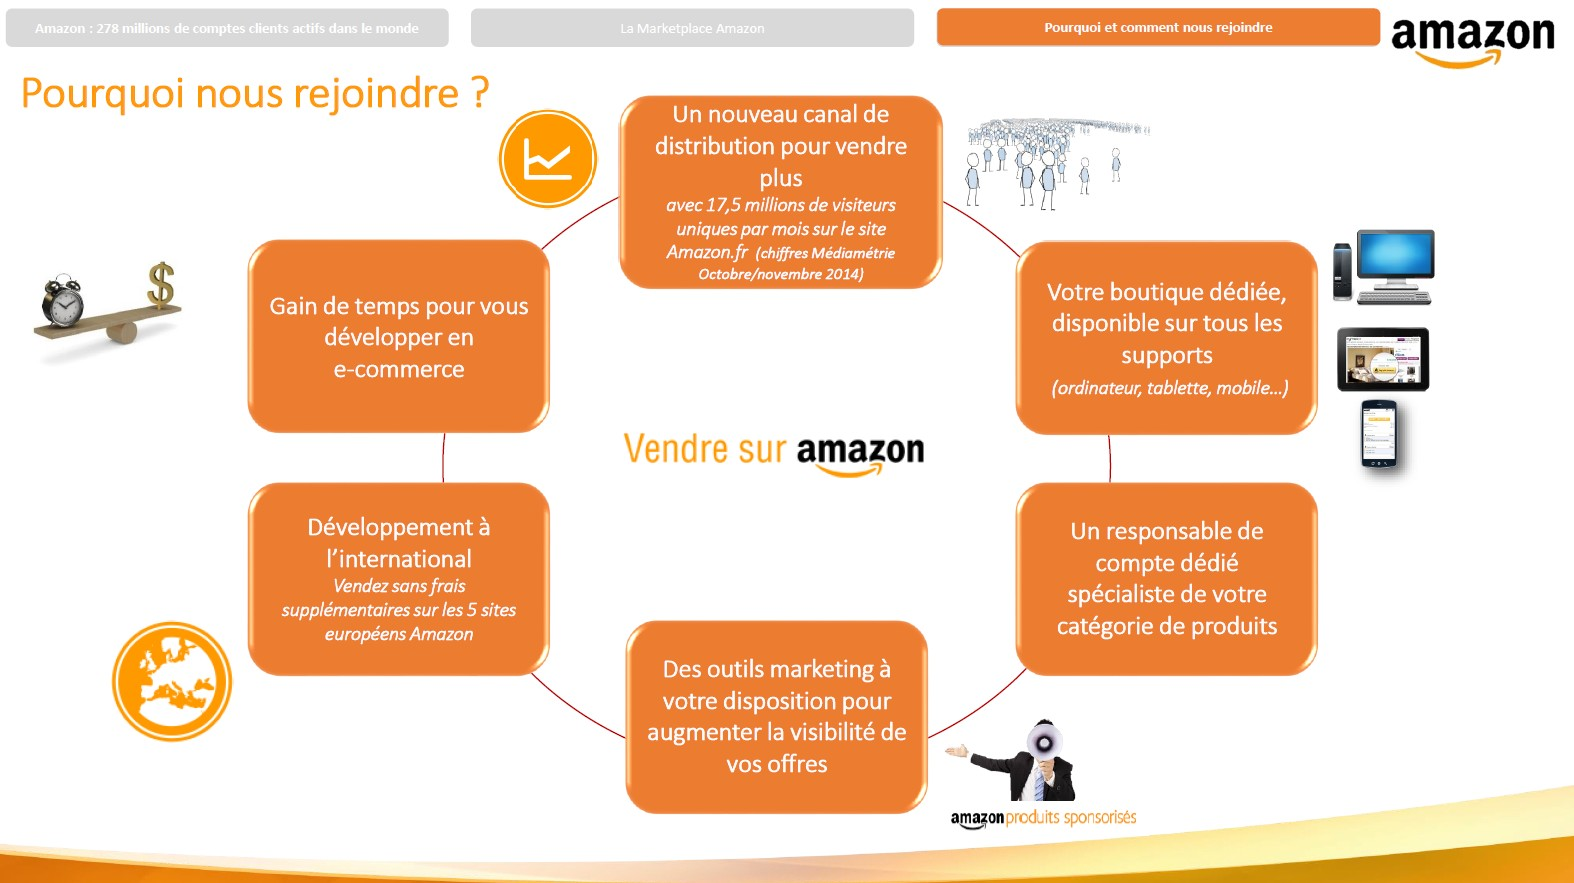 amazon pourquoi